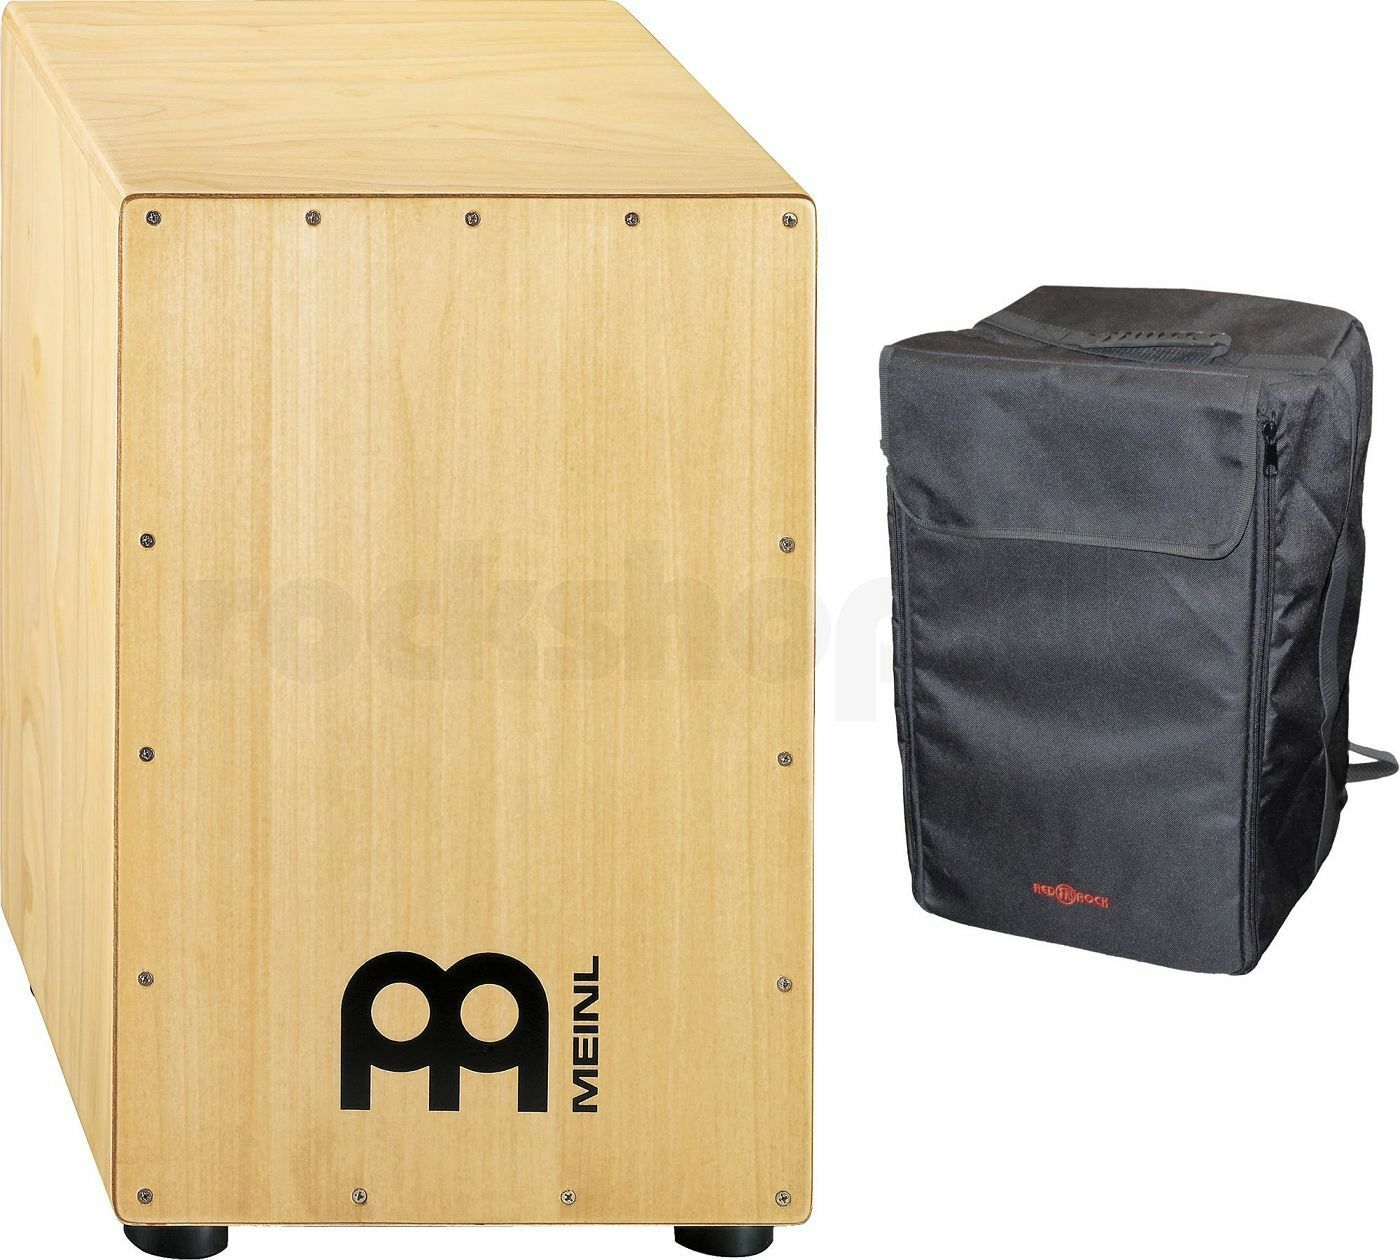 Meinl HCAJ1NT Headliner Rubber Wood Cajon Percussion mit Tasche - SET NEU